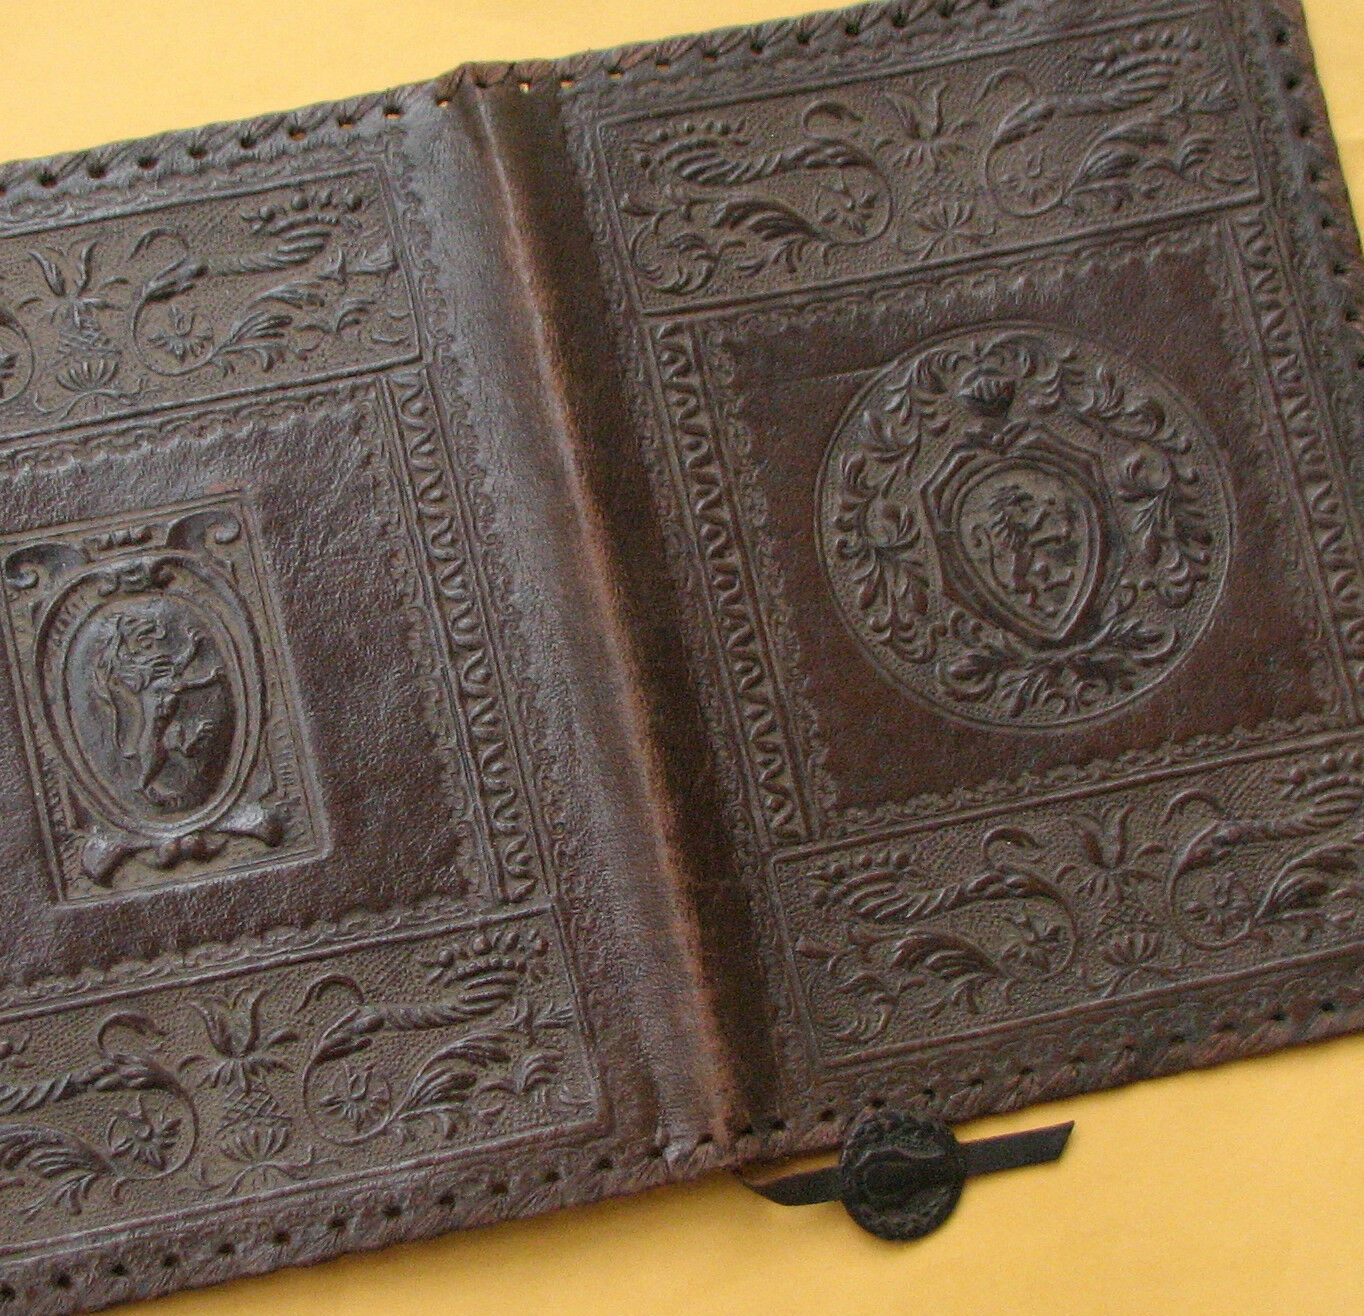 Older-VINTAGE-Hand-Tooled-LEATHER-BOOK-C